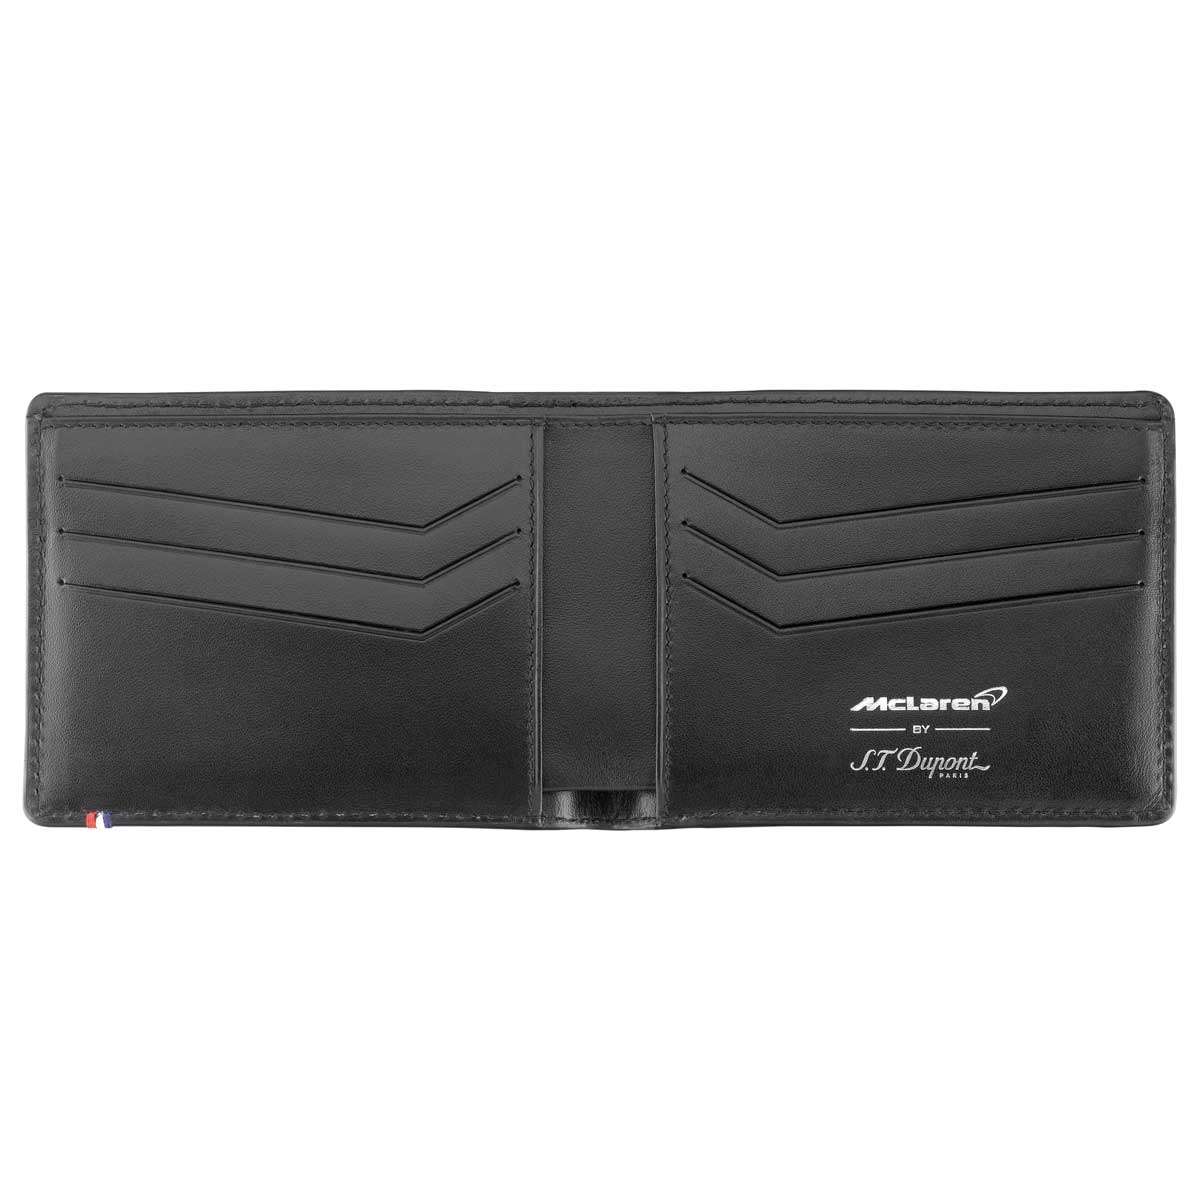 ST Dupont McLaren 6 Credit Card Wallet - Perforated Leather - Limited Edition